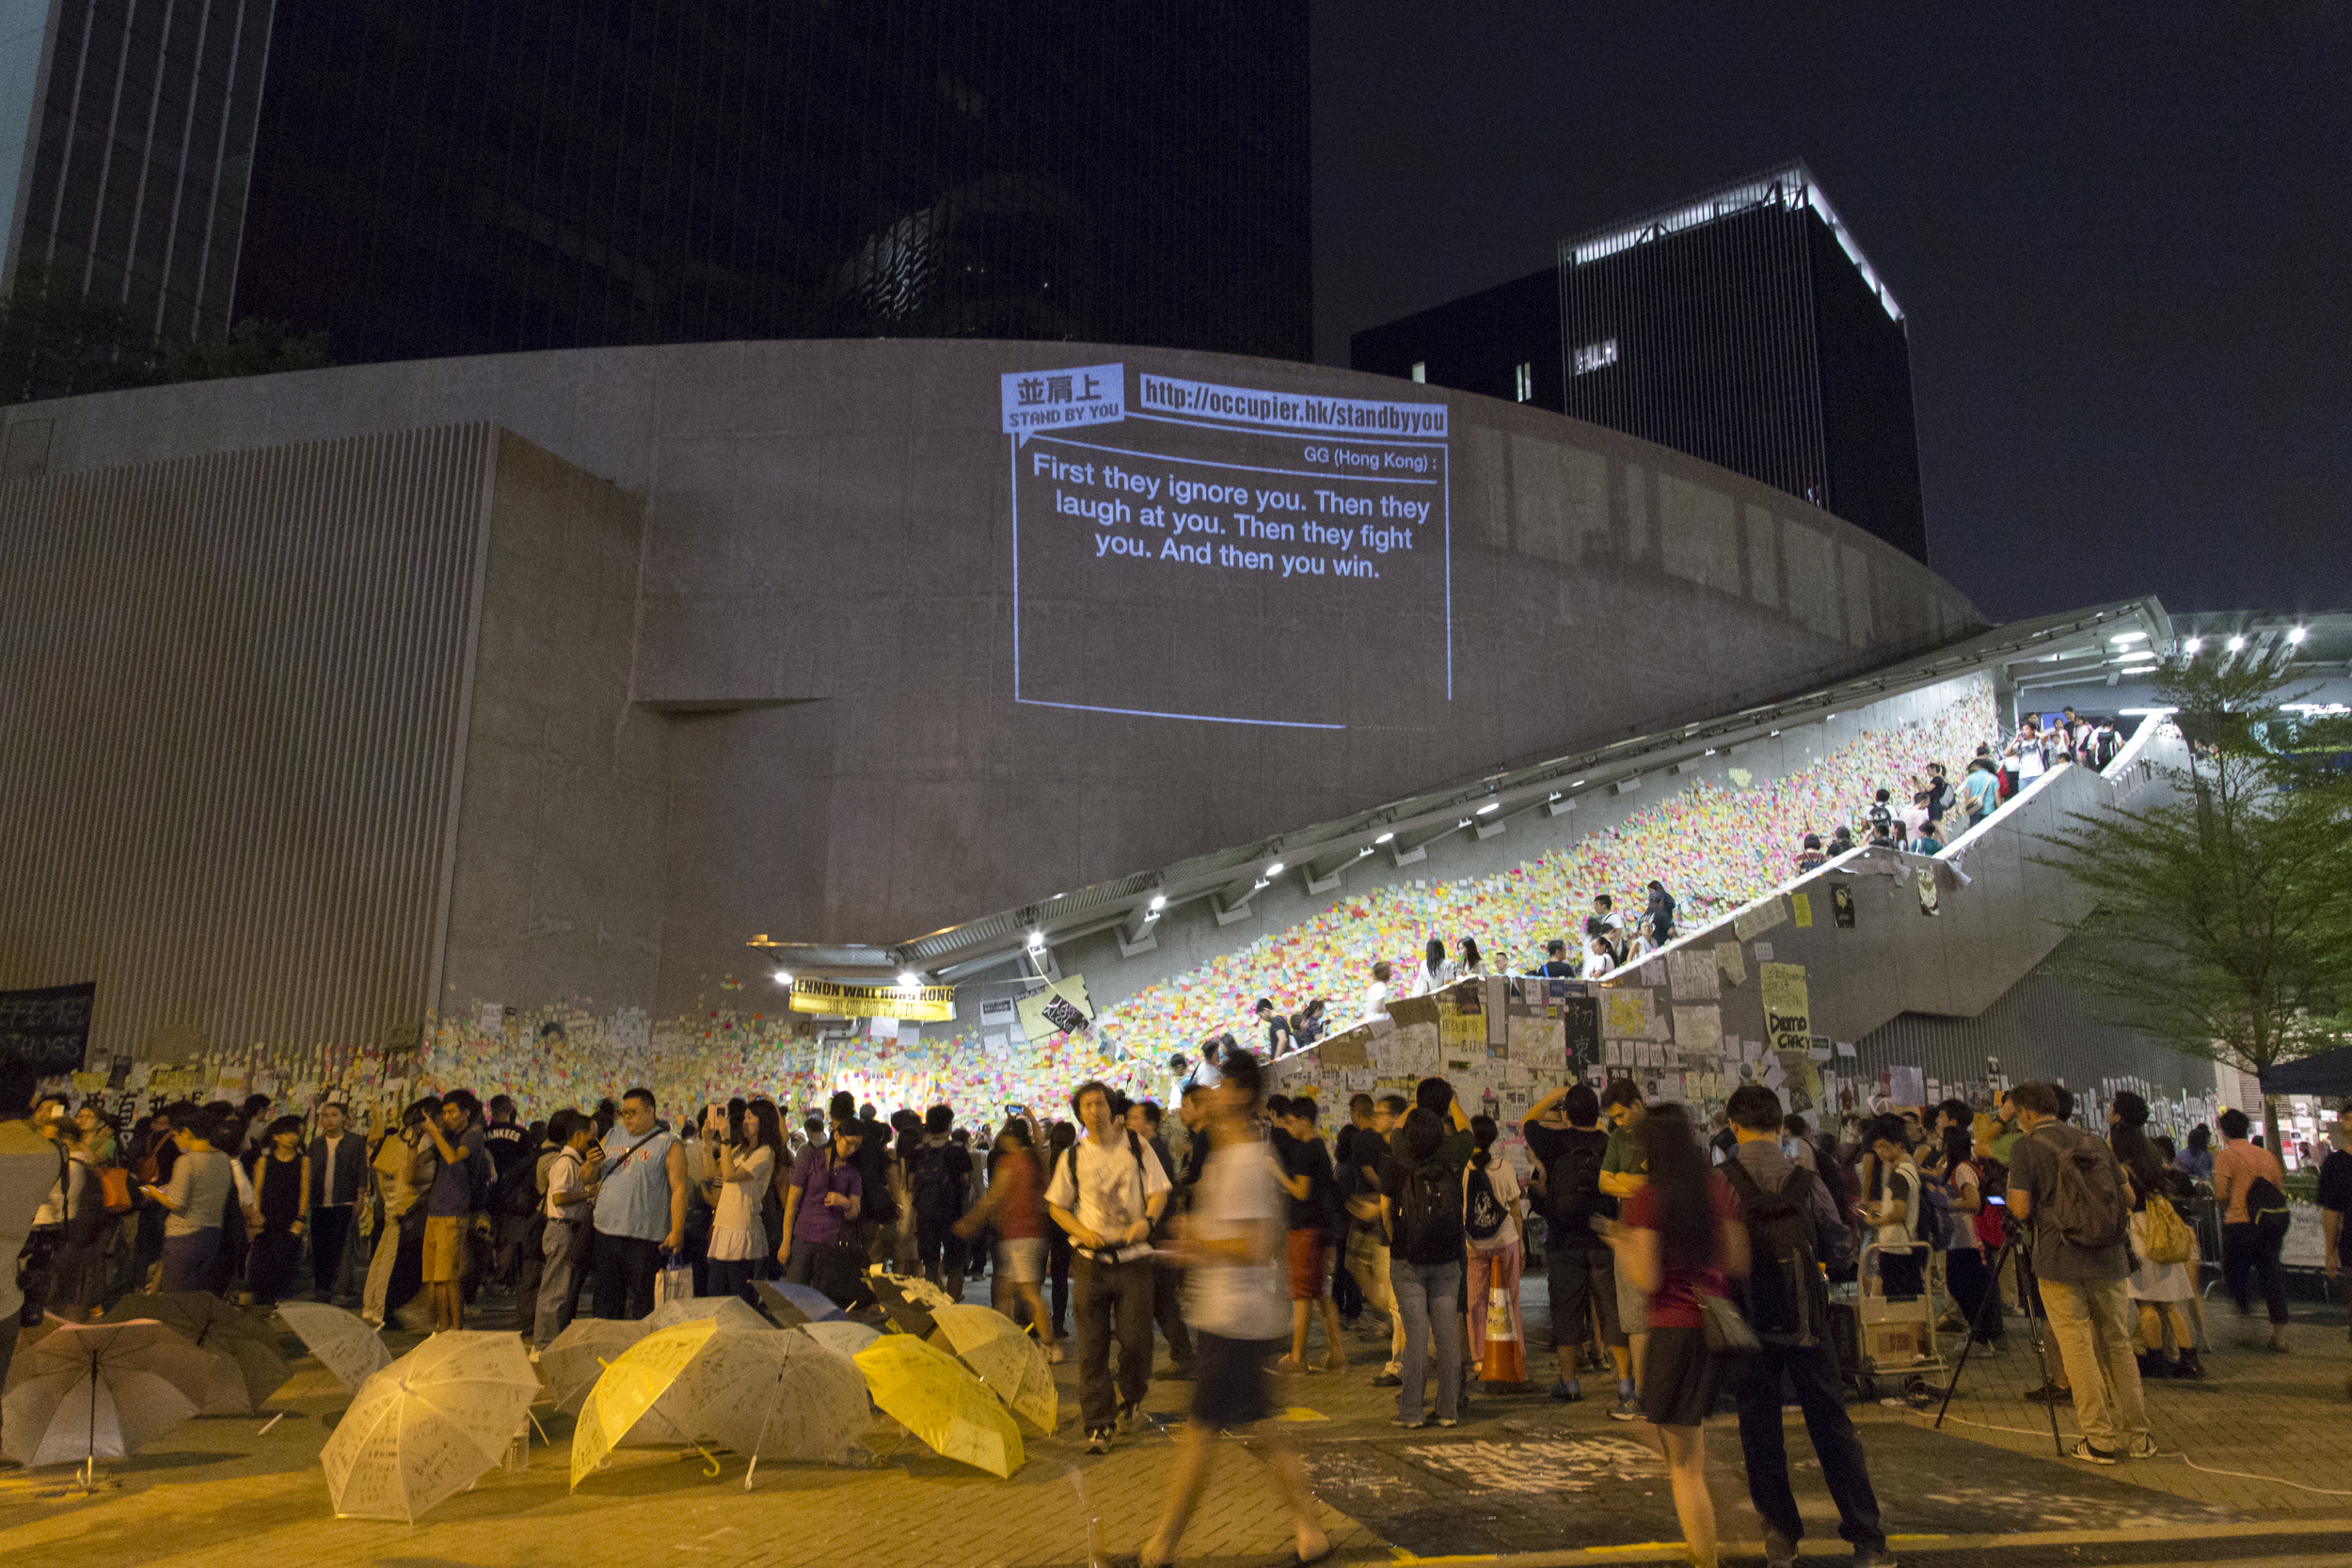 """""""Do you hear the people sing?    Singing the song of angry men?""""   It was stated in July 1997,when the United Kingdom handed Hong Kong back to China, the government would act as 'one country, two systems.' But for the 2016 Legislative Election the Chinese government will choose the representatives for the Hong Kong citizens to vote from.In September 2014, Hong Kong citizens gathered in protest for their right to fairly vote. From this issue the Umbrella Movement was born."""